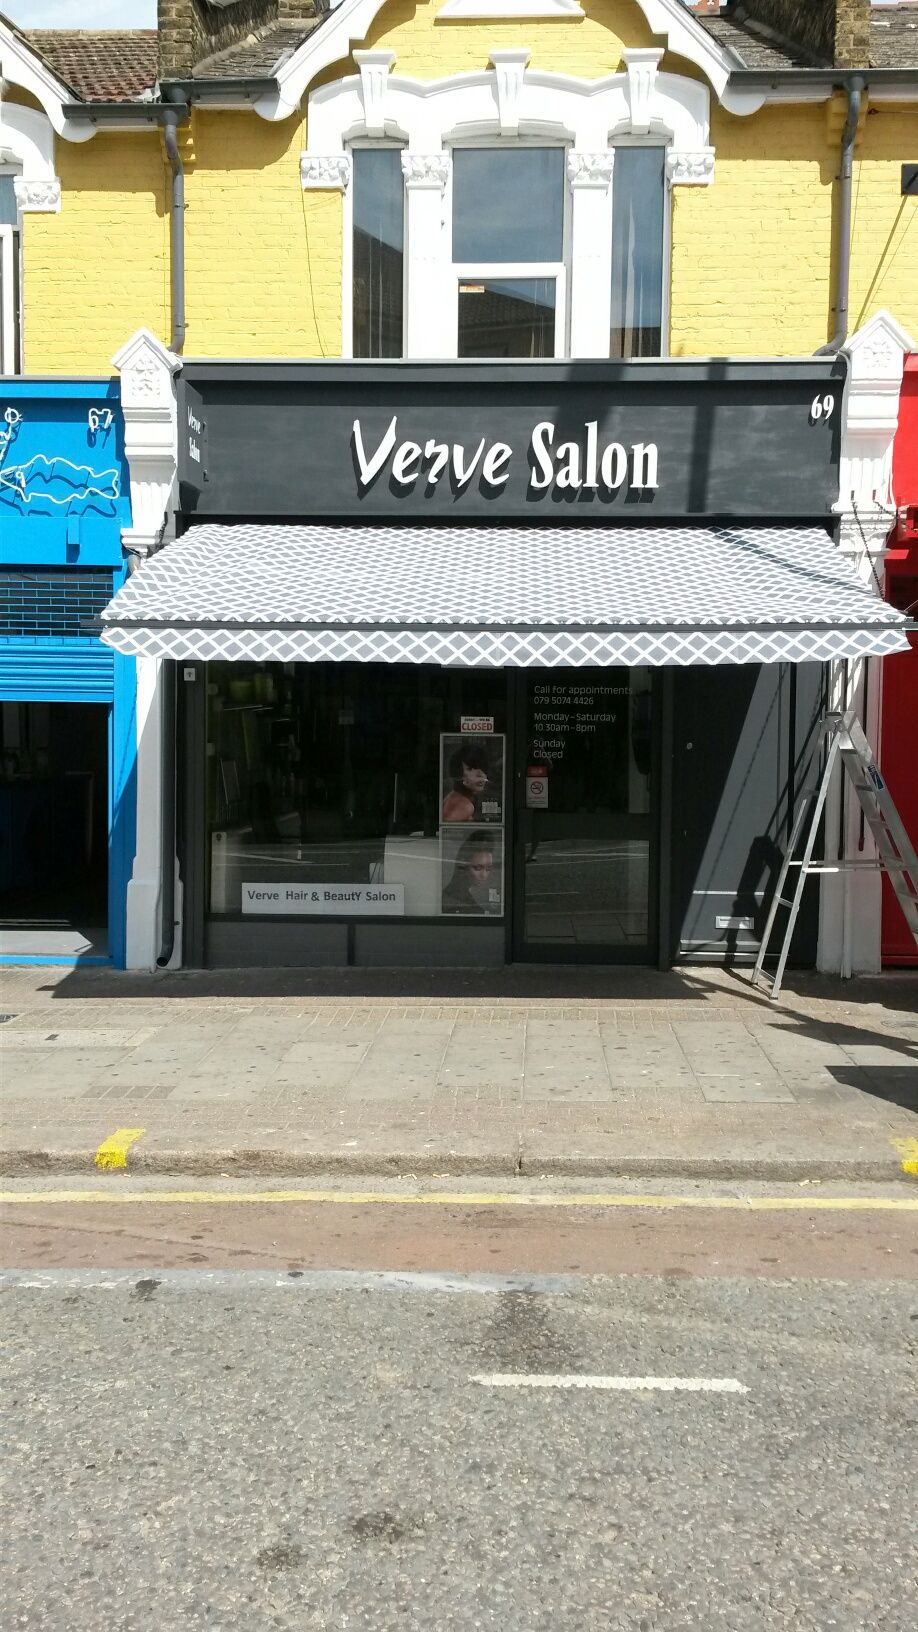 Two new shopfronts with Traditional Victorian Shop Awnings ...